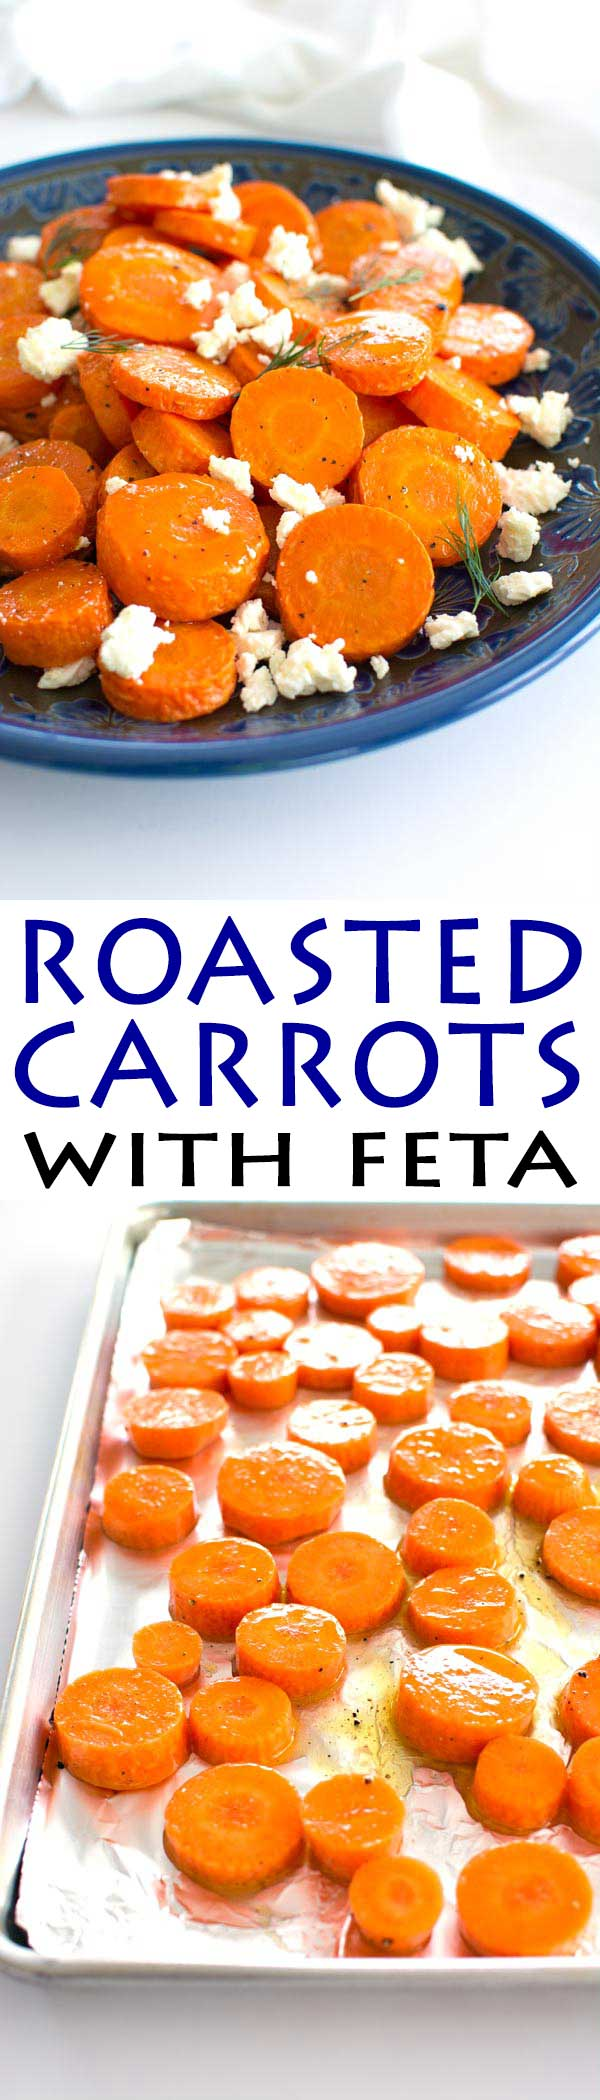 Oven roasted carrots with feta cheese is a super easy (and delicious) side dish!